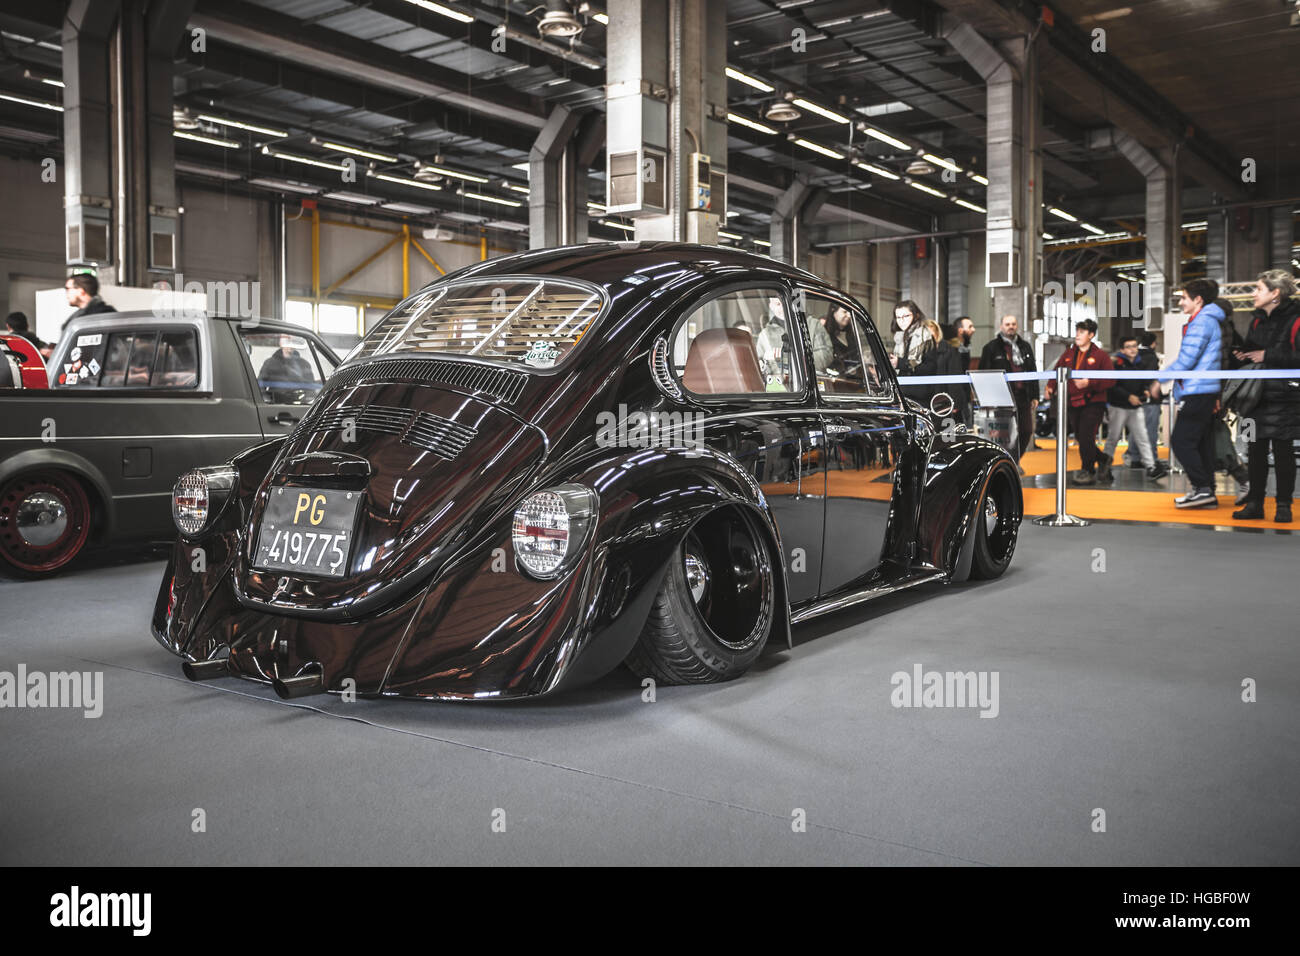 Italy, Bologna motor show 2016, volkswagen beetle type 1 - Stock Image